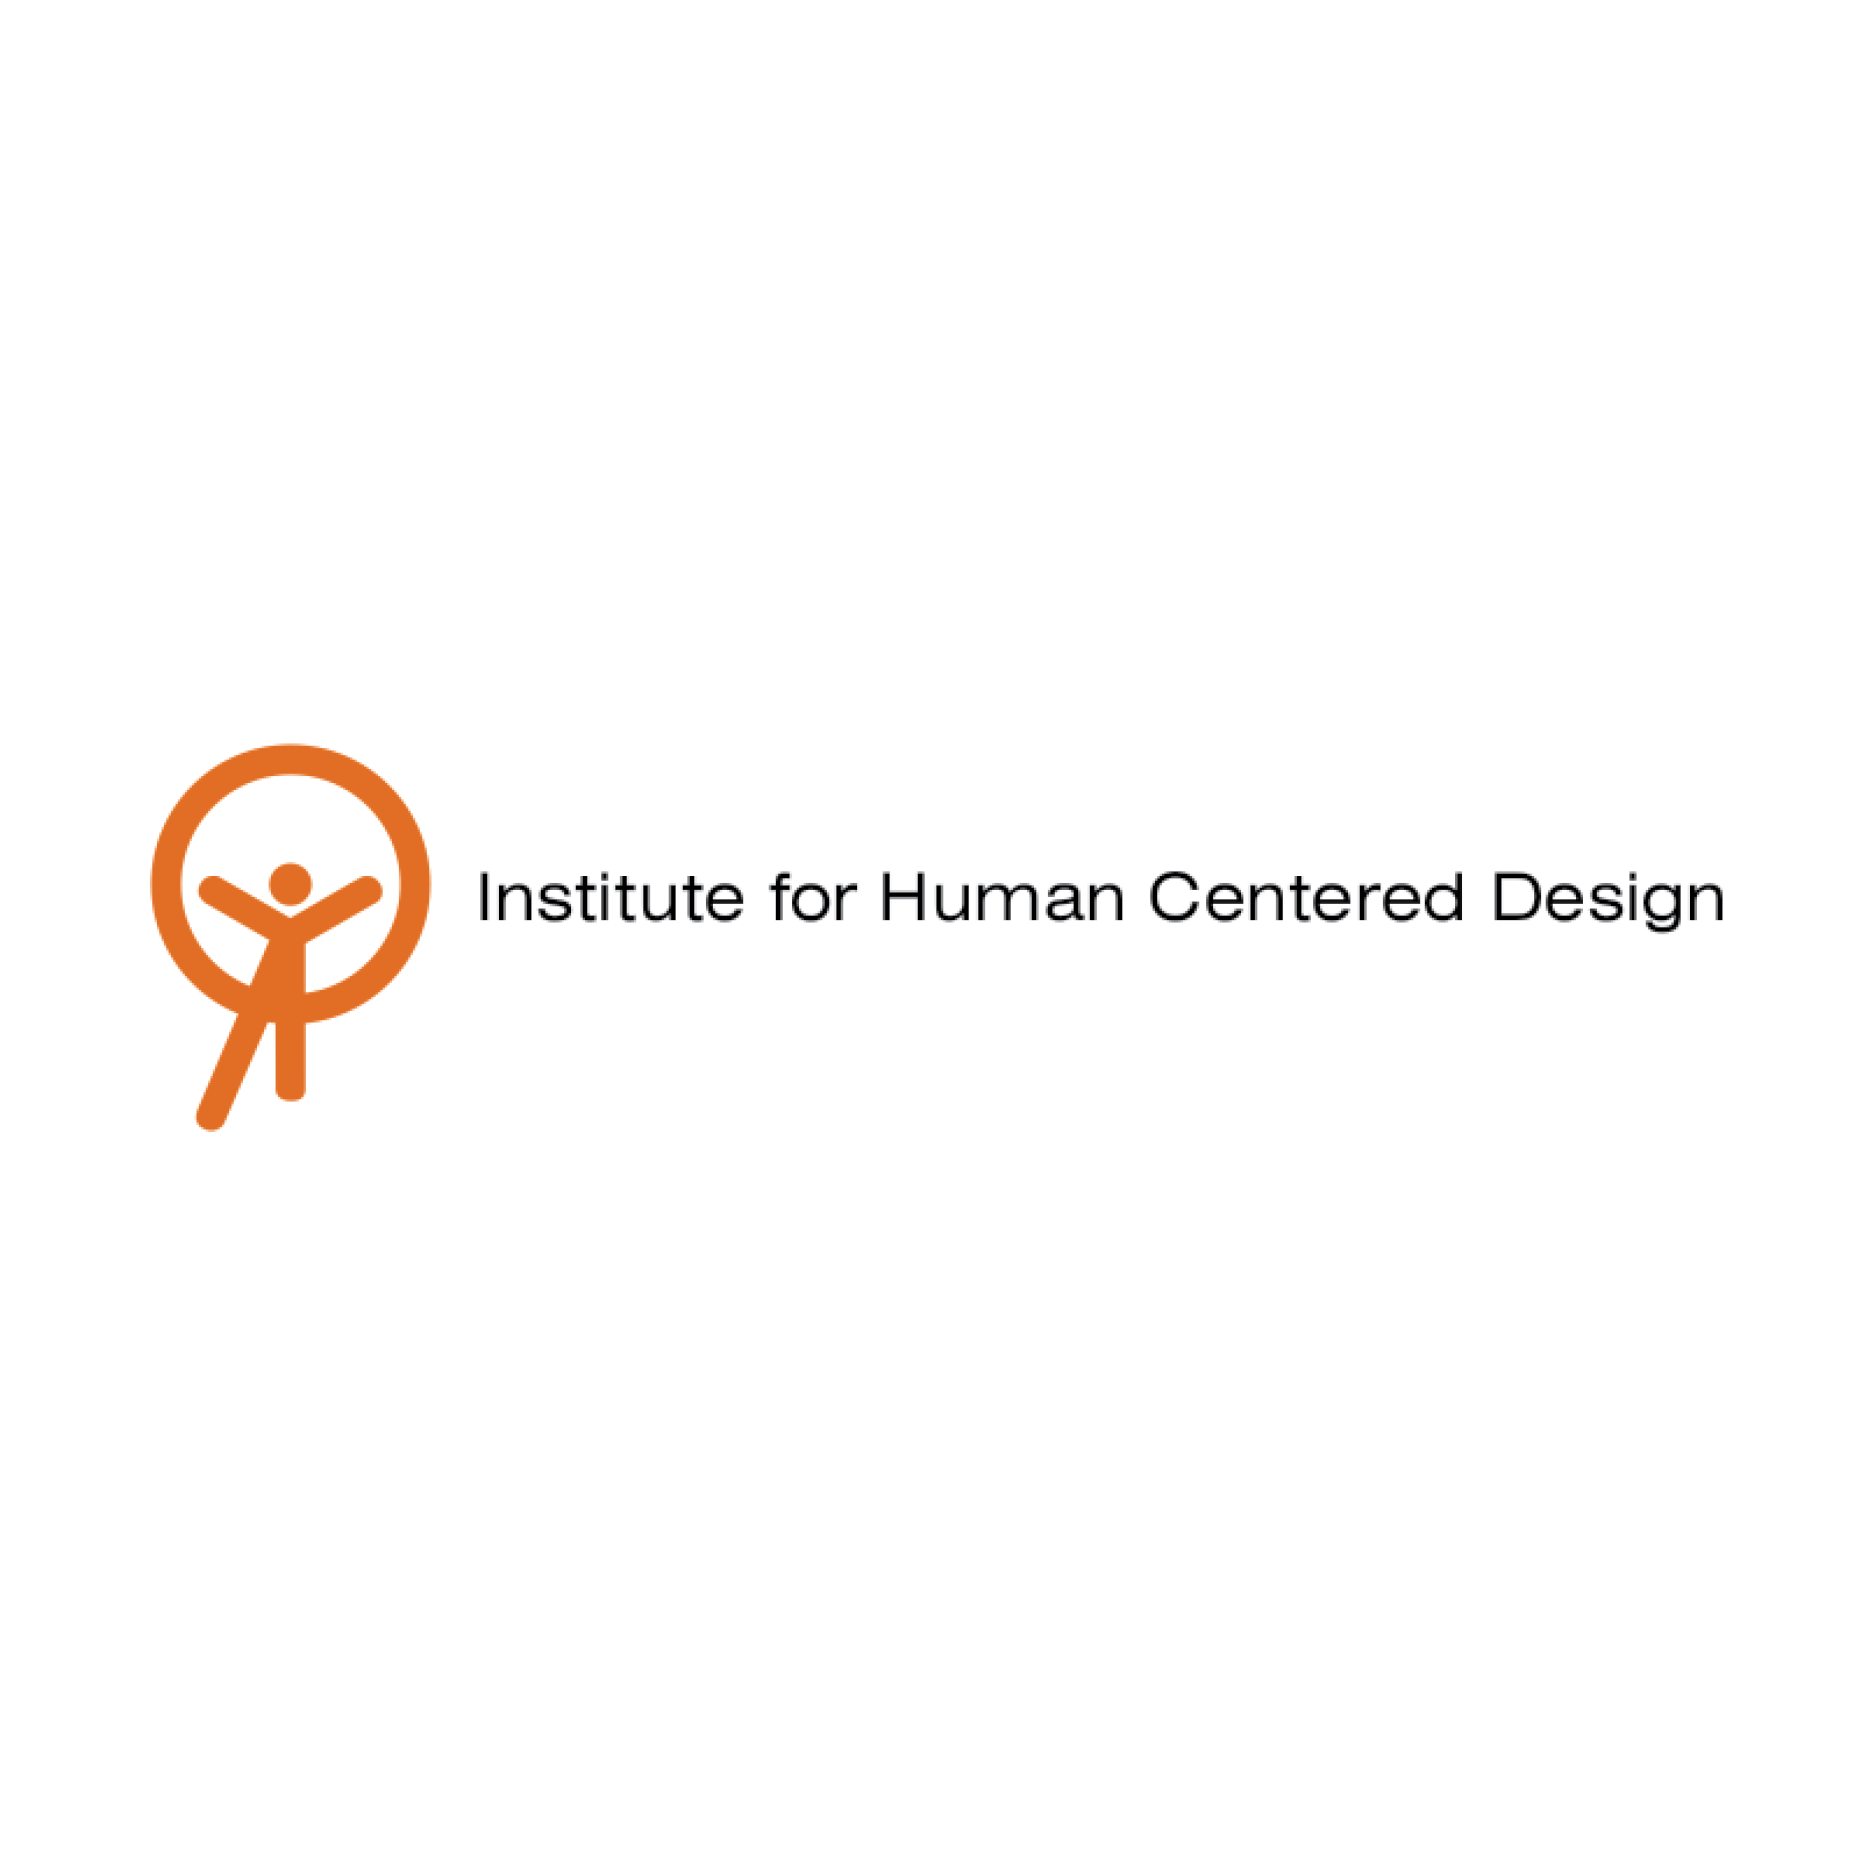 Institute for Human Centered Design (IHCD)